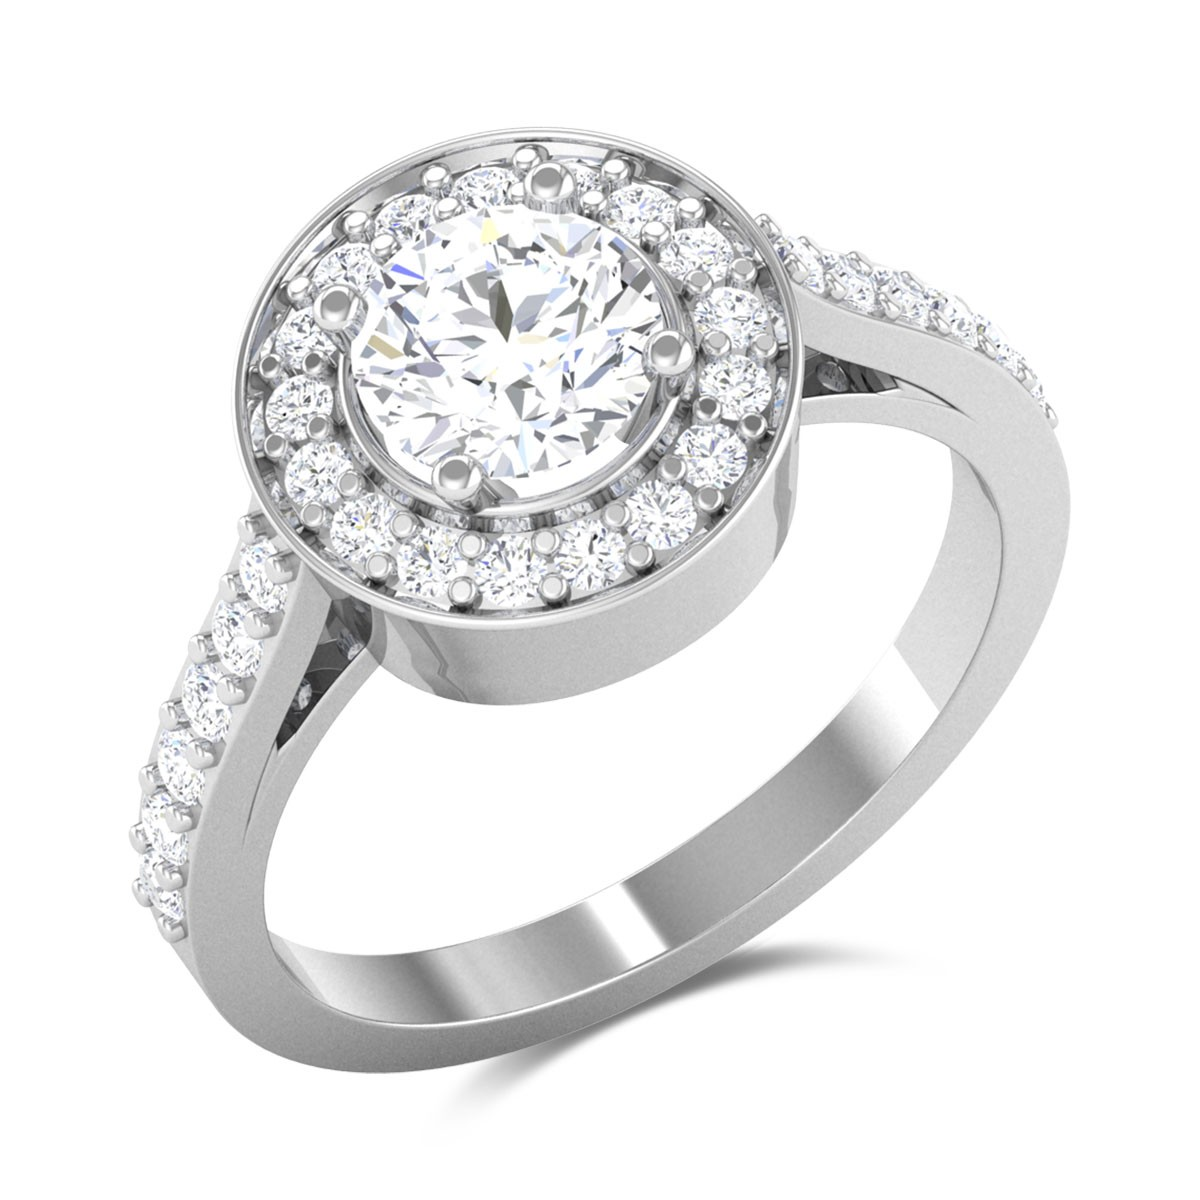 Azure Halo Solitaire Ring